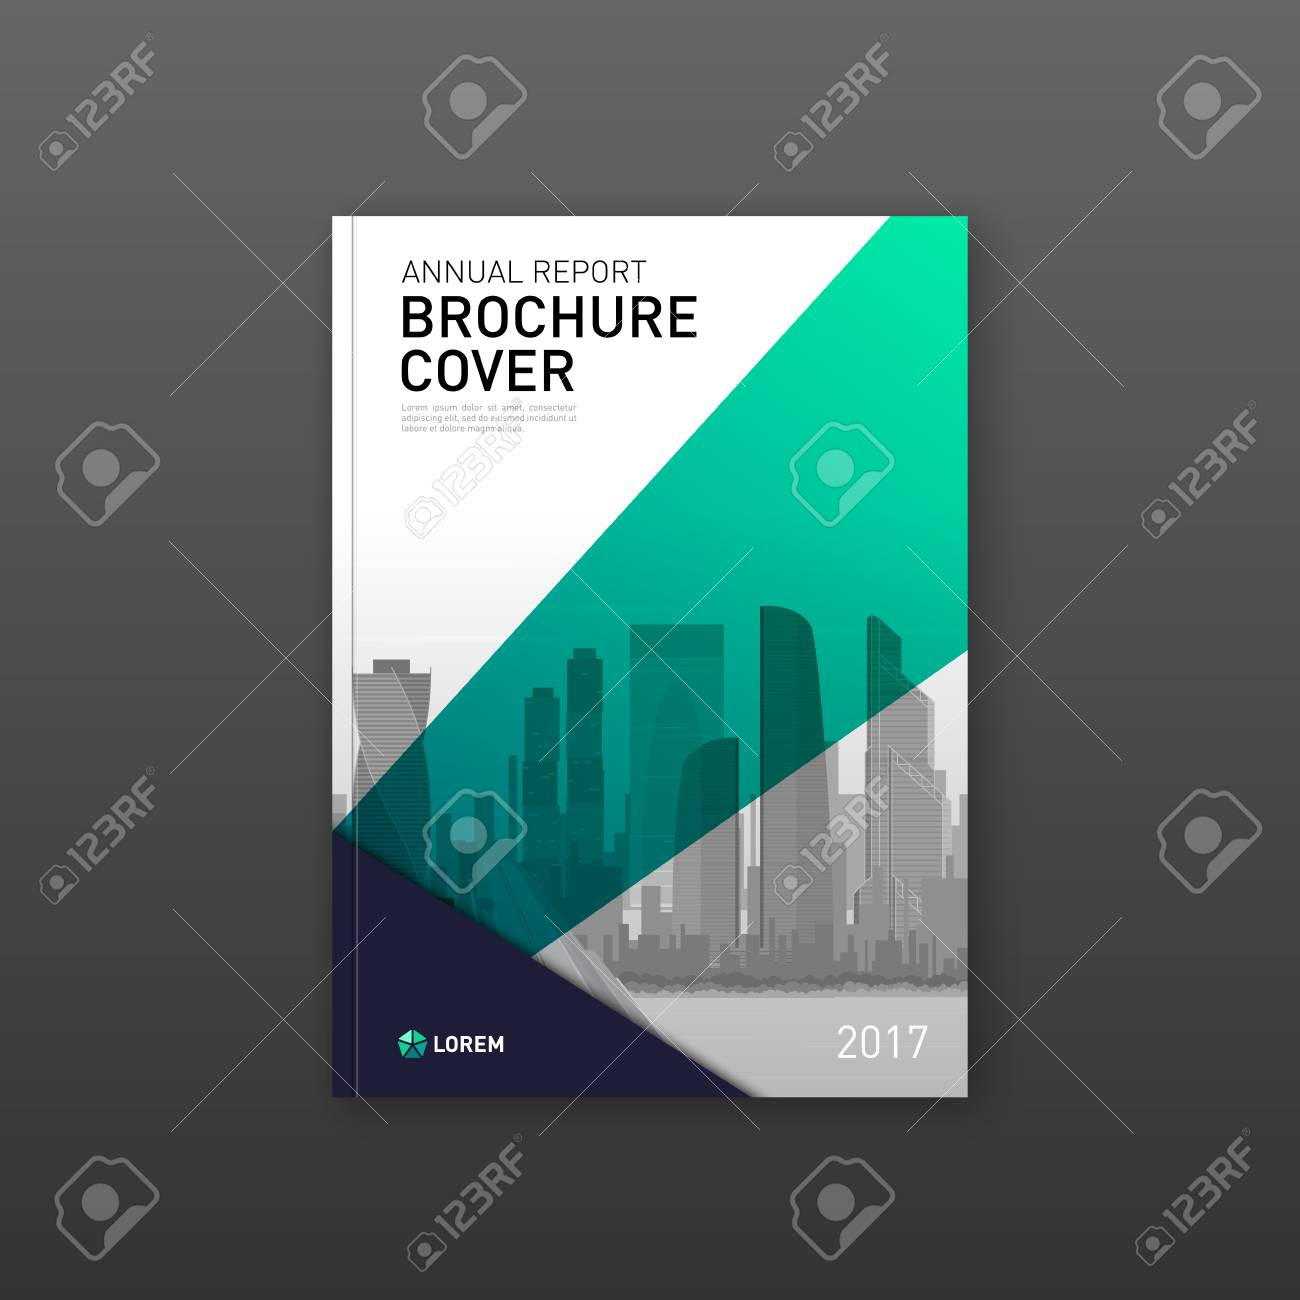 Brochure cover design template for construction or investment